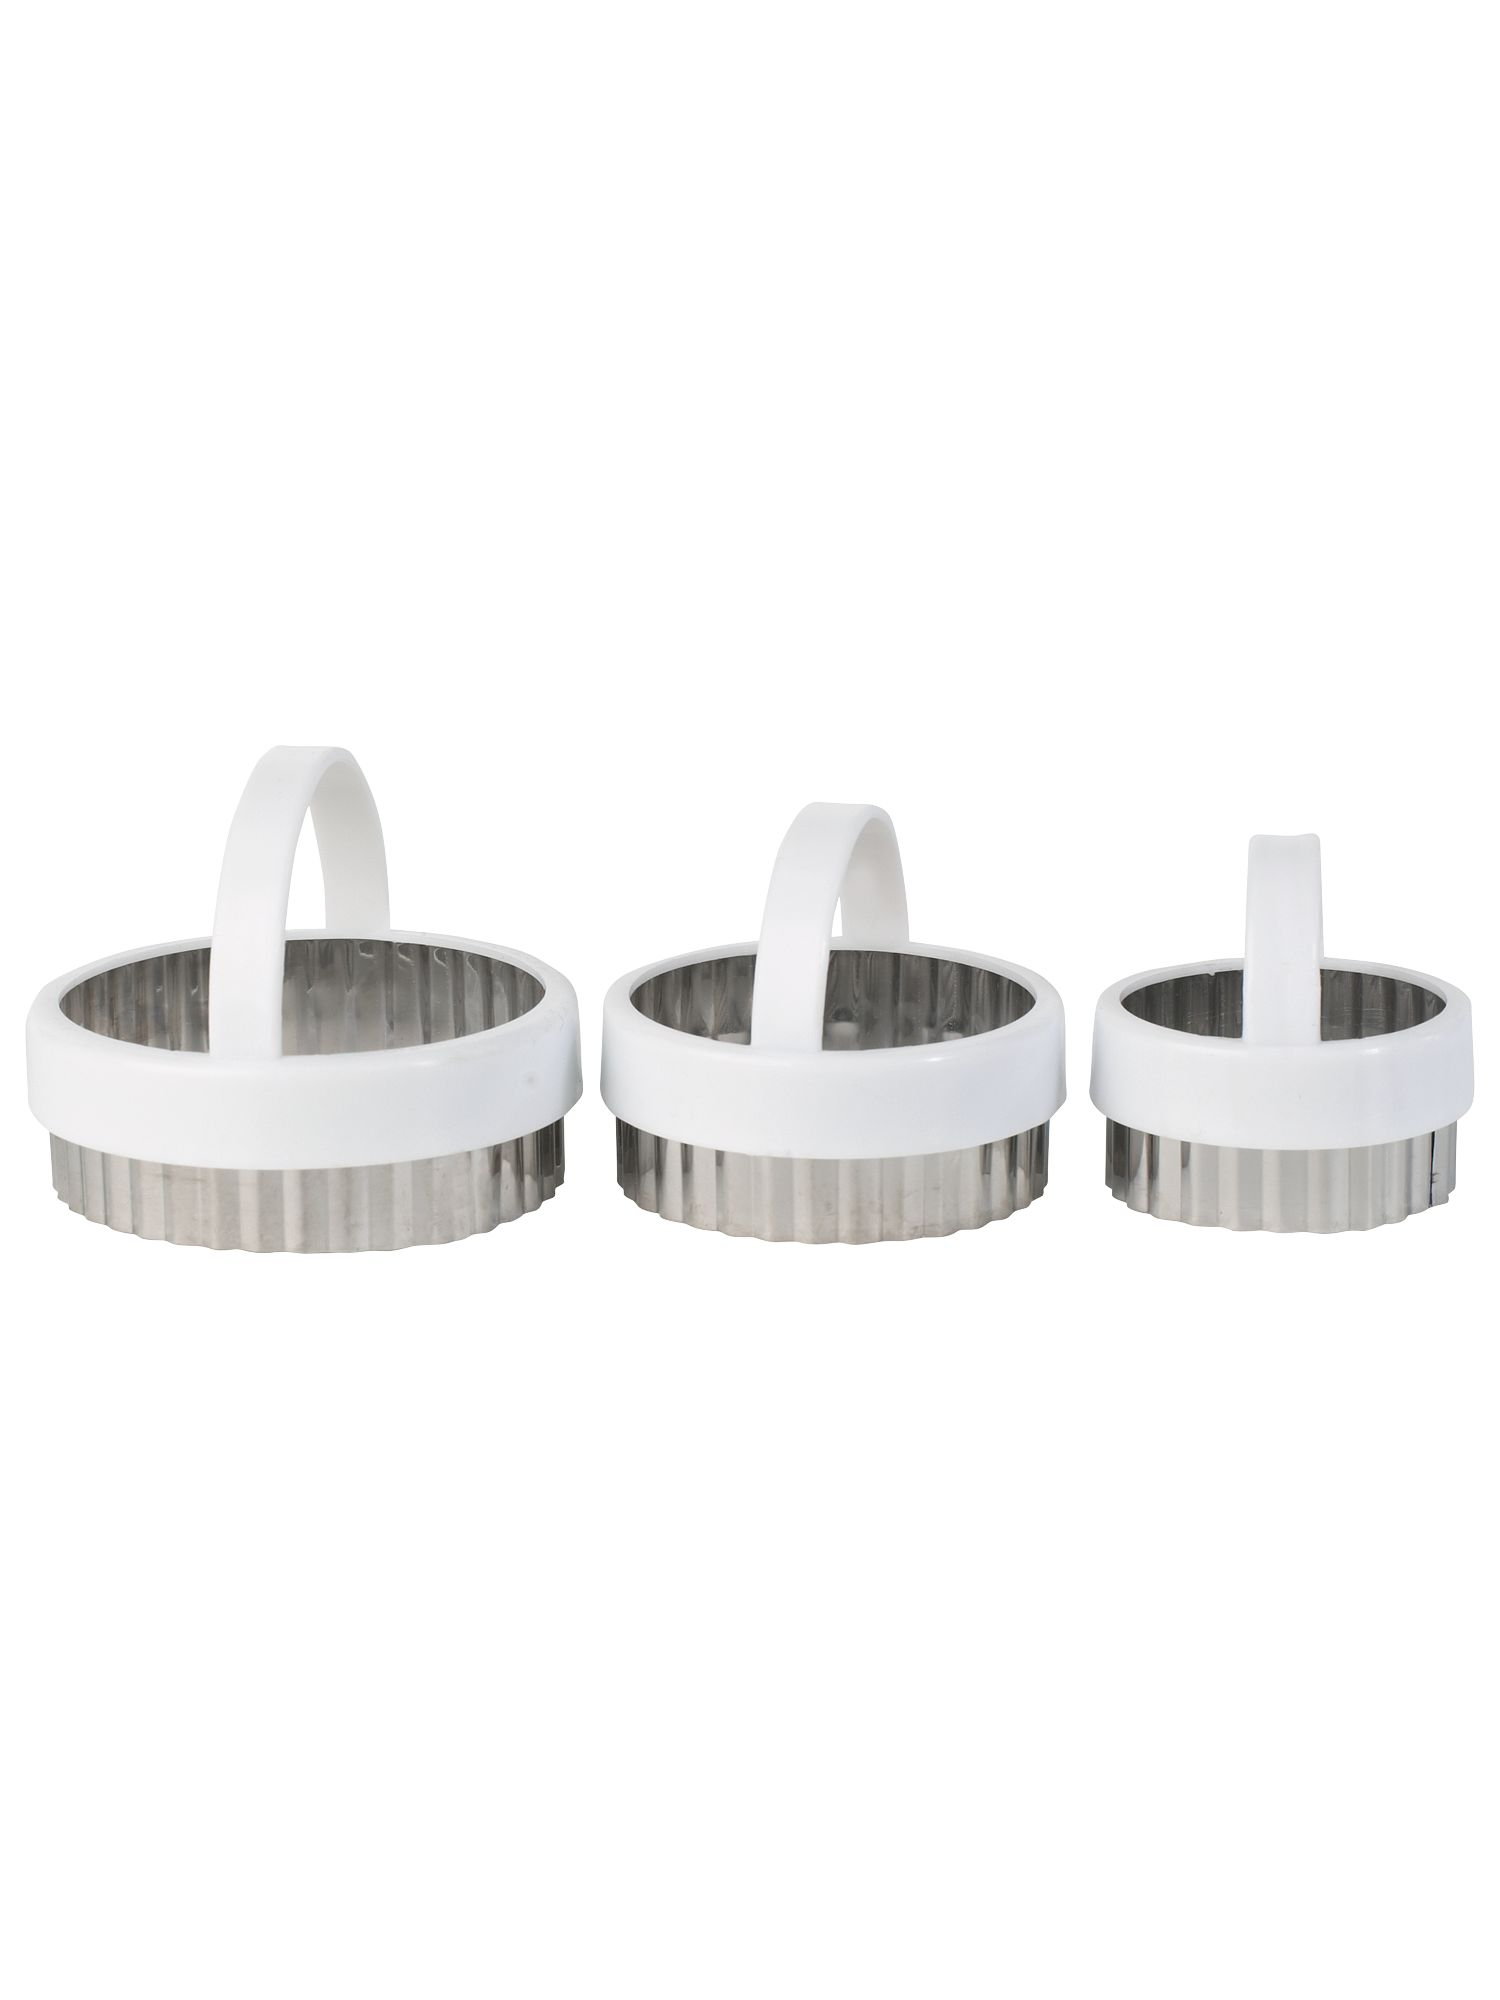 Fluted Pastry Cutters 3 Piece Set